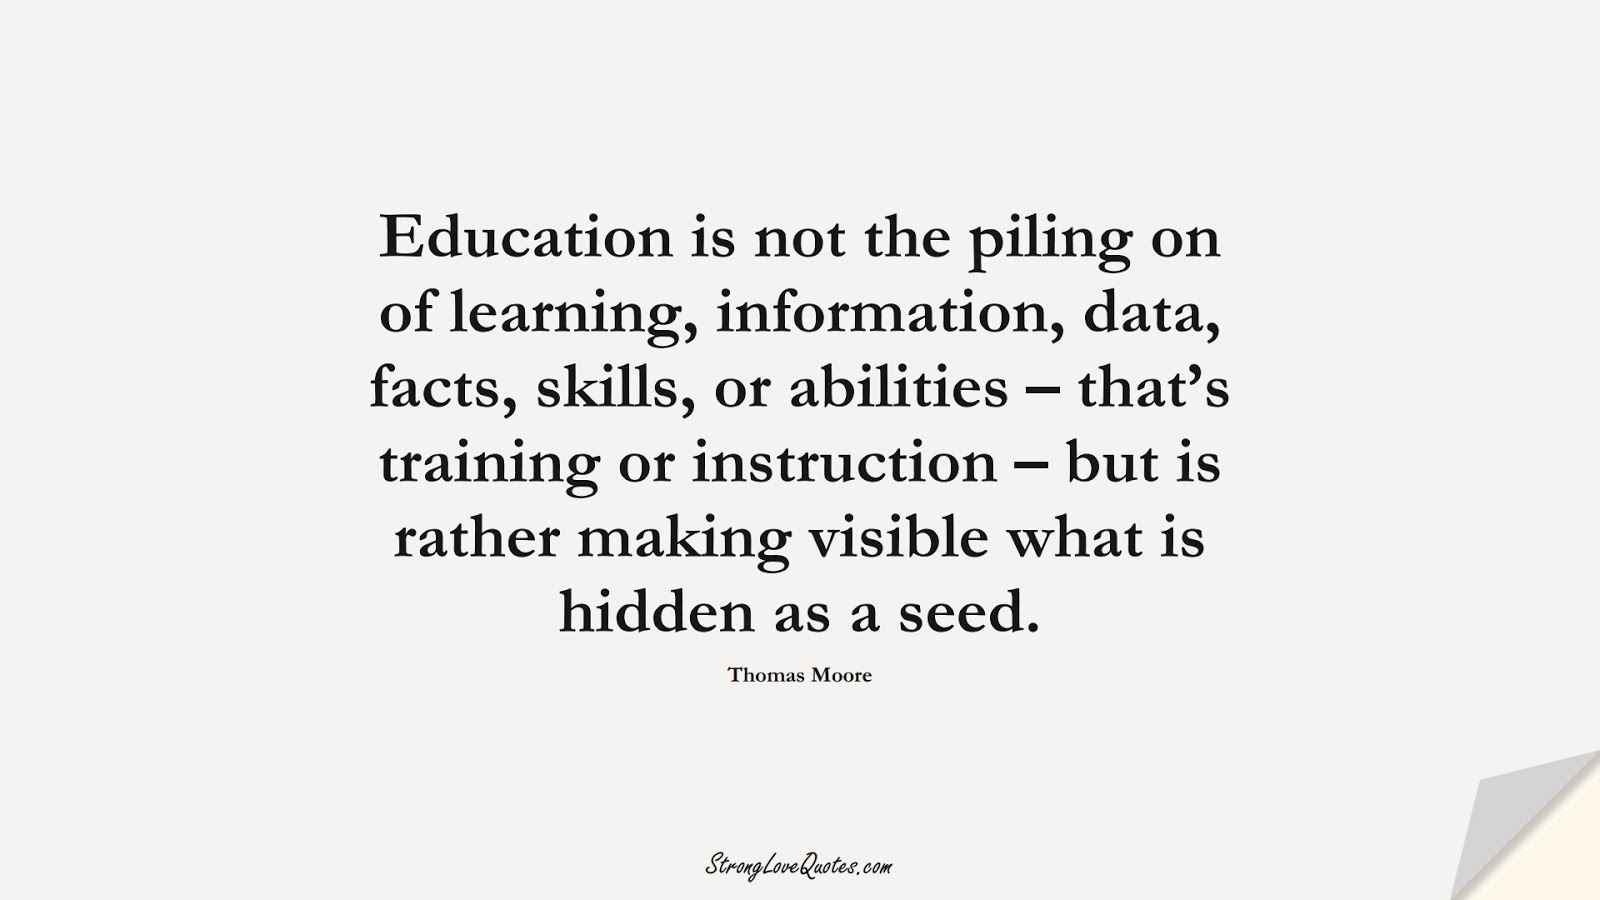 Education is not the piling on of learning, information, data, facts, skills, or abilities – that's training or instruction – but is rather making visible what is hidden as a seed. (Thomas Moore);  #EducationQuotes